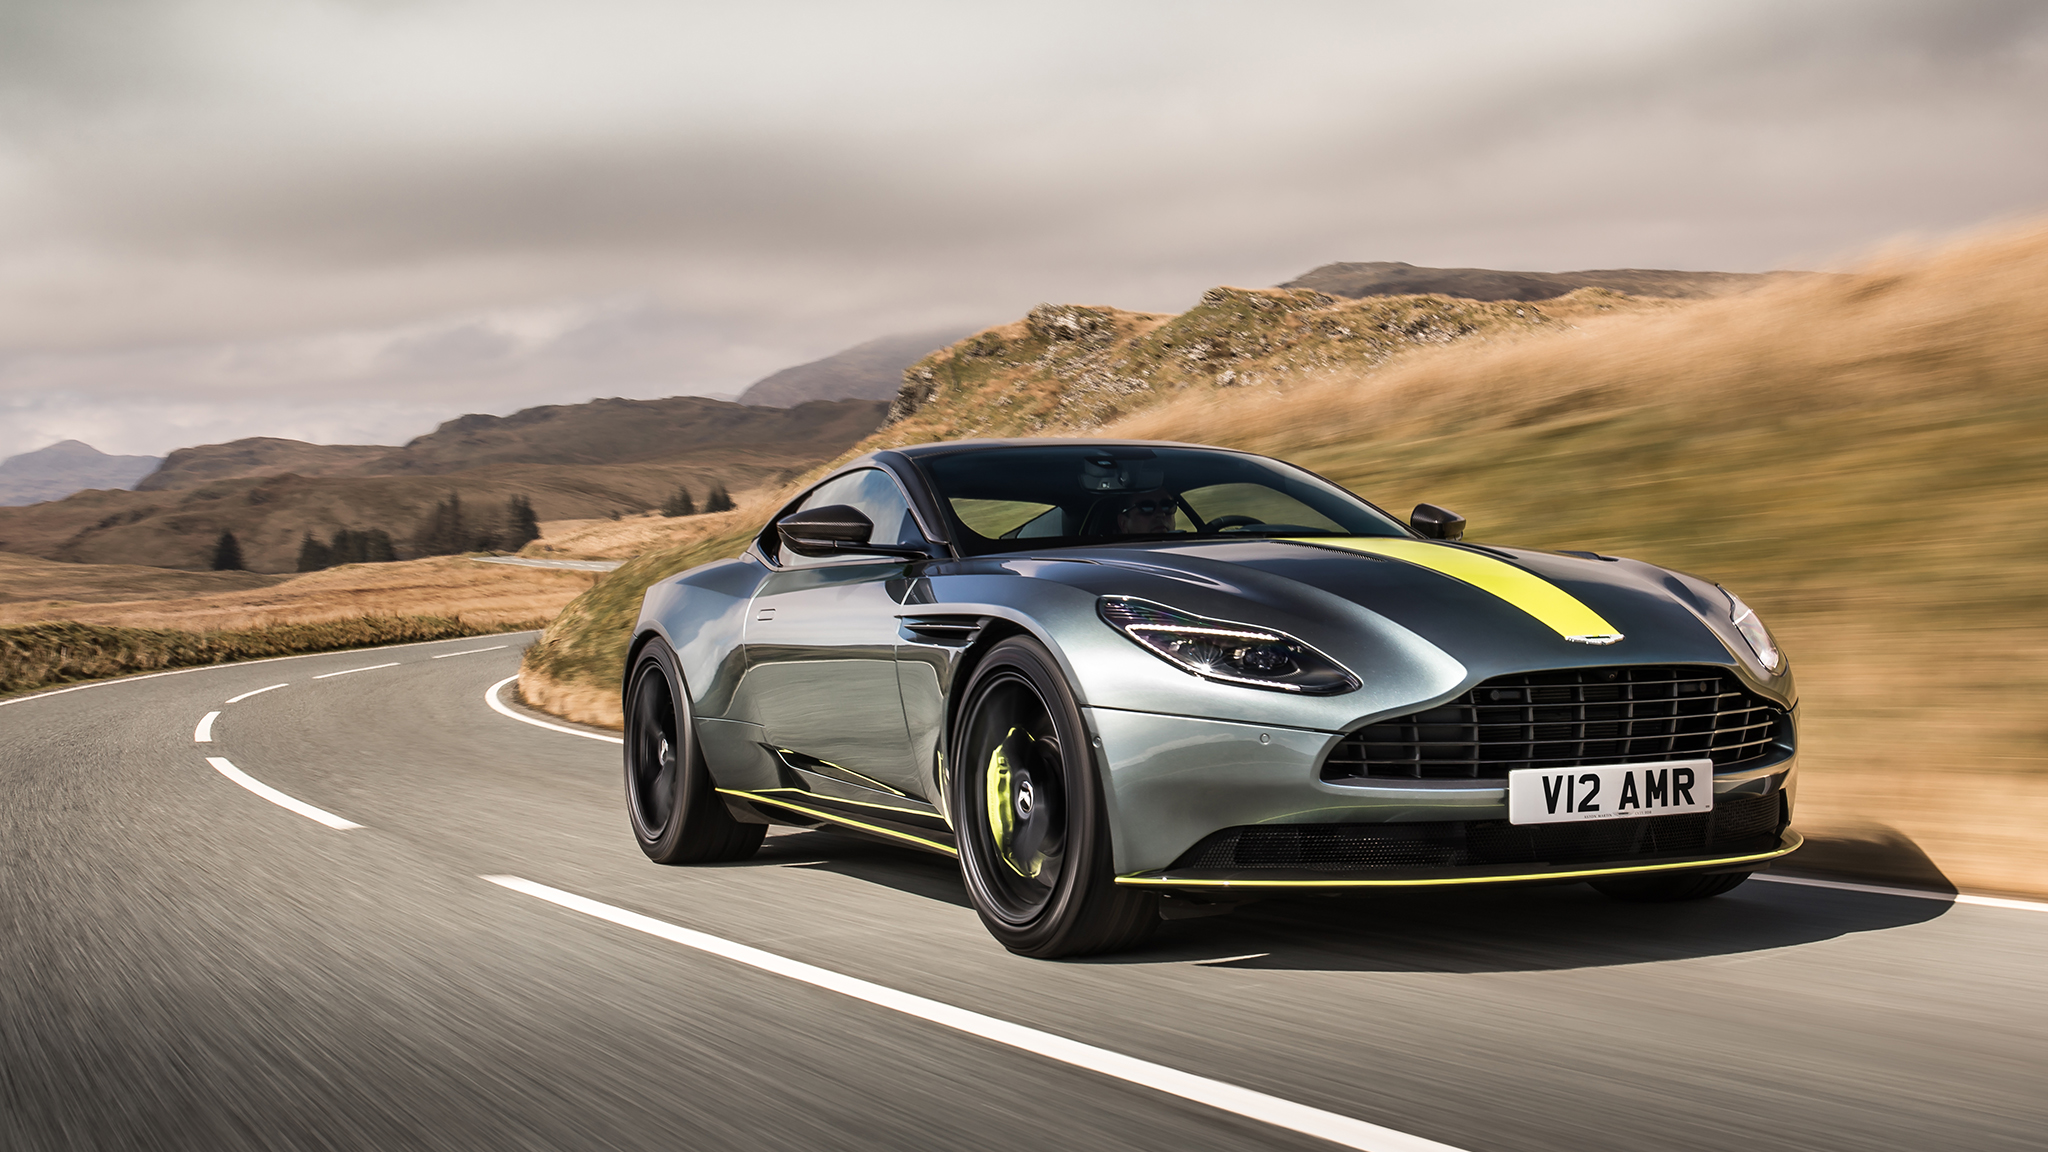 Aston Martin Seeks To Overtake Ferrari Valuation In Flotation - Aston martin pics